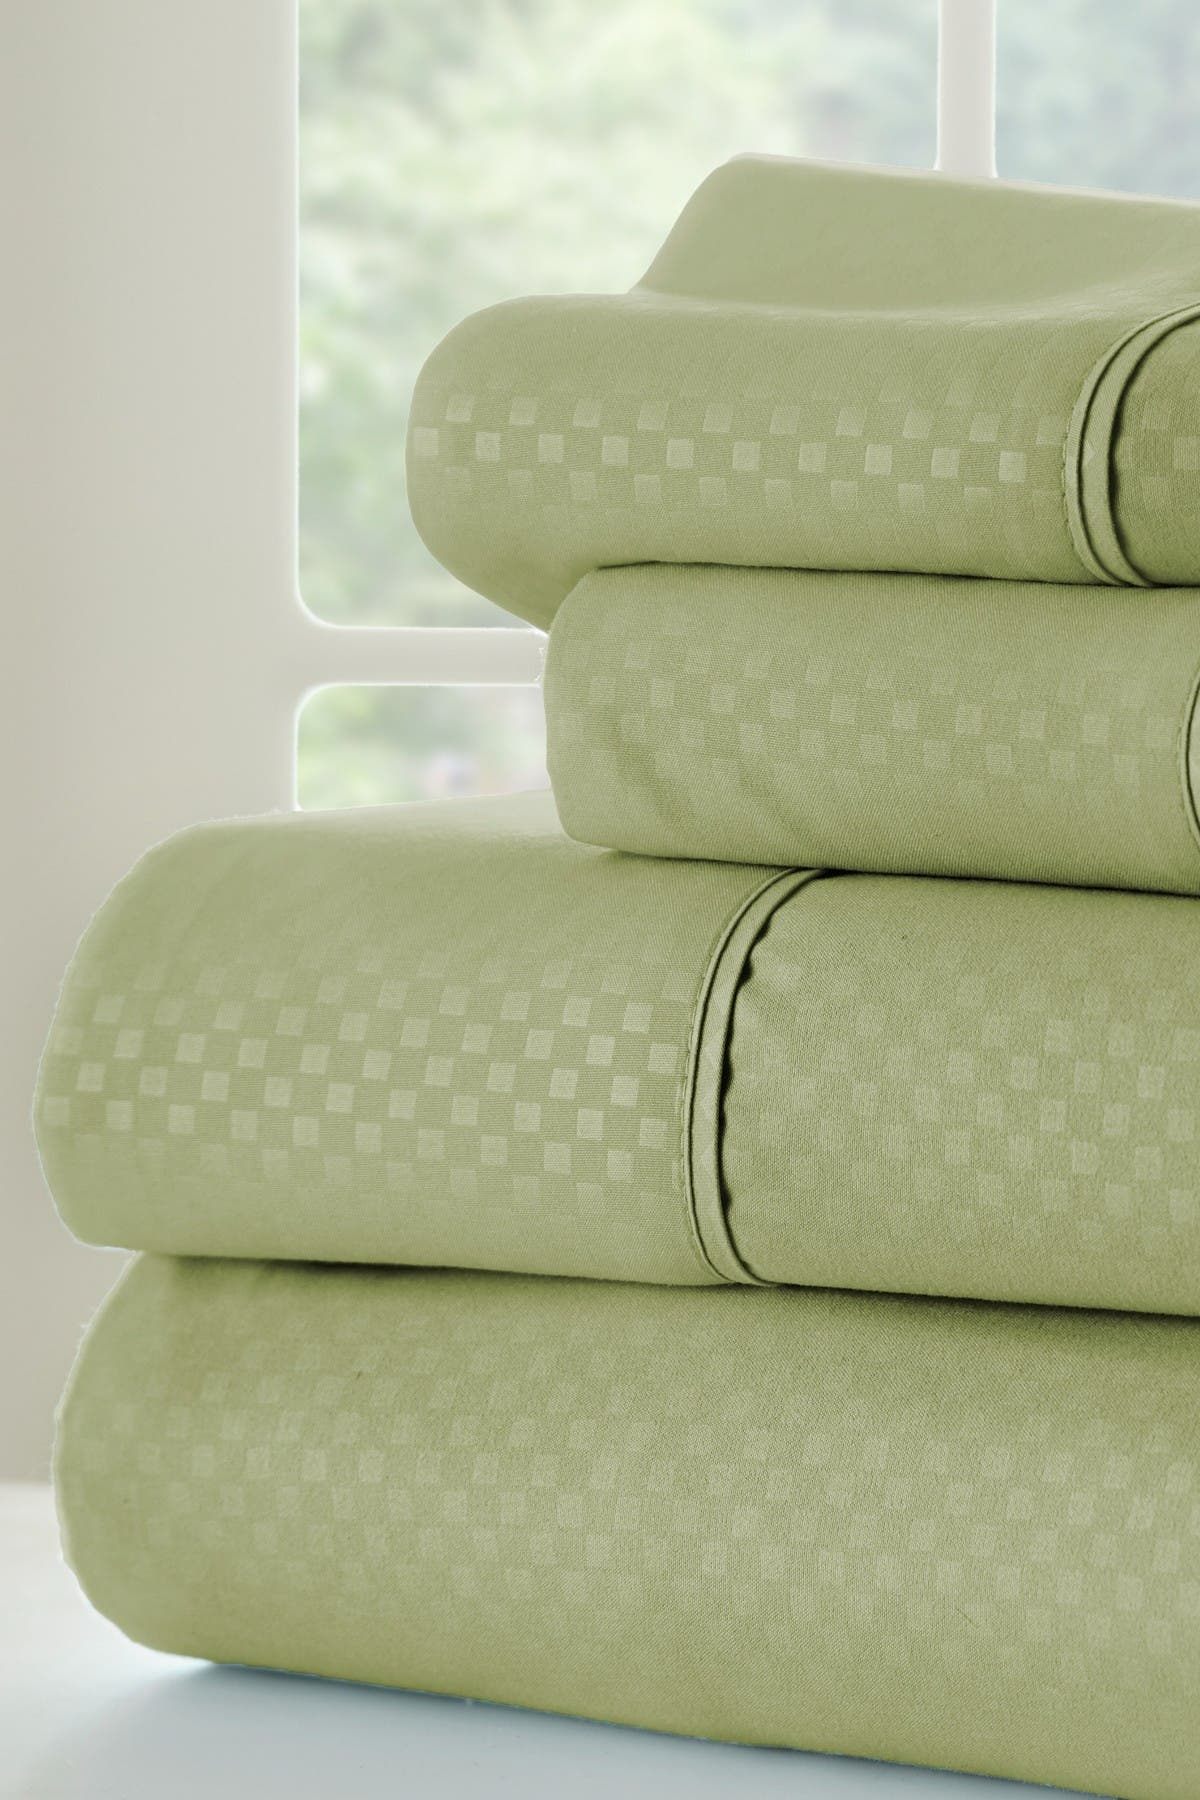 Image of IENJOY HOME California King Hotel Collection Premium Ultra Soft 4-Piece Checkered Bed Sheet Set - Sage